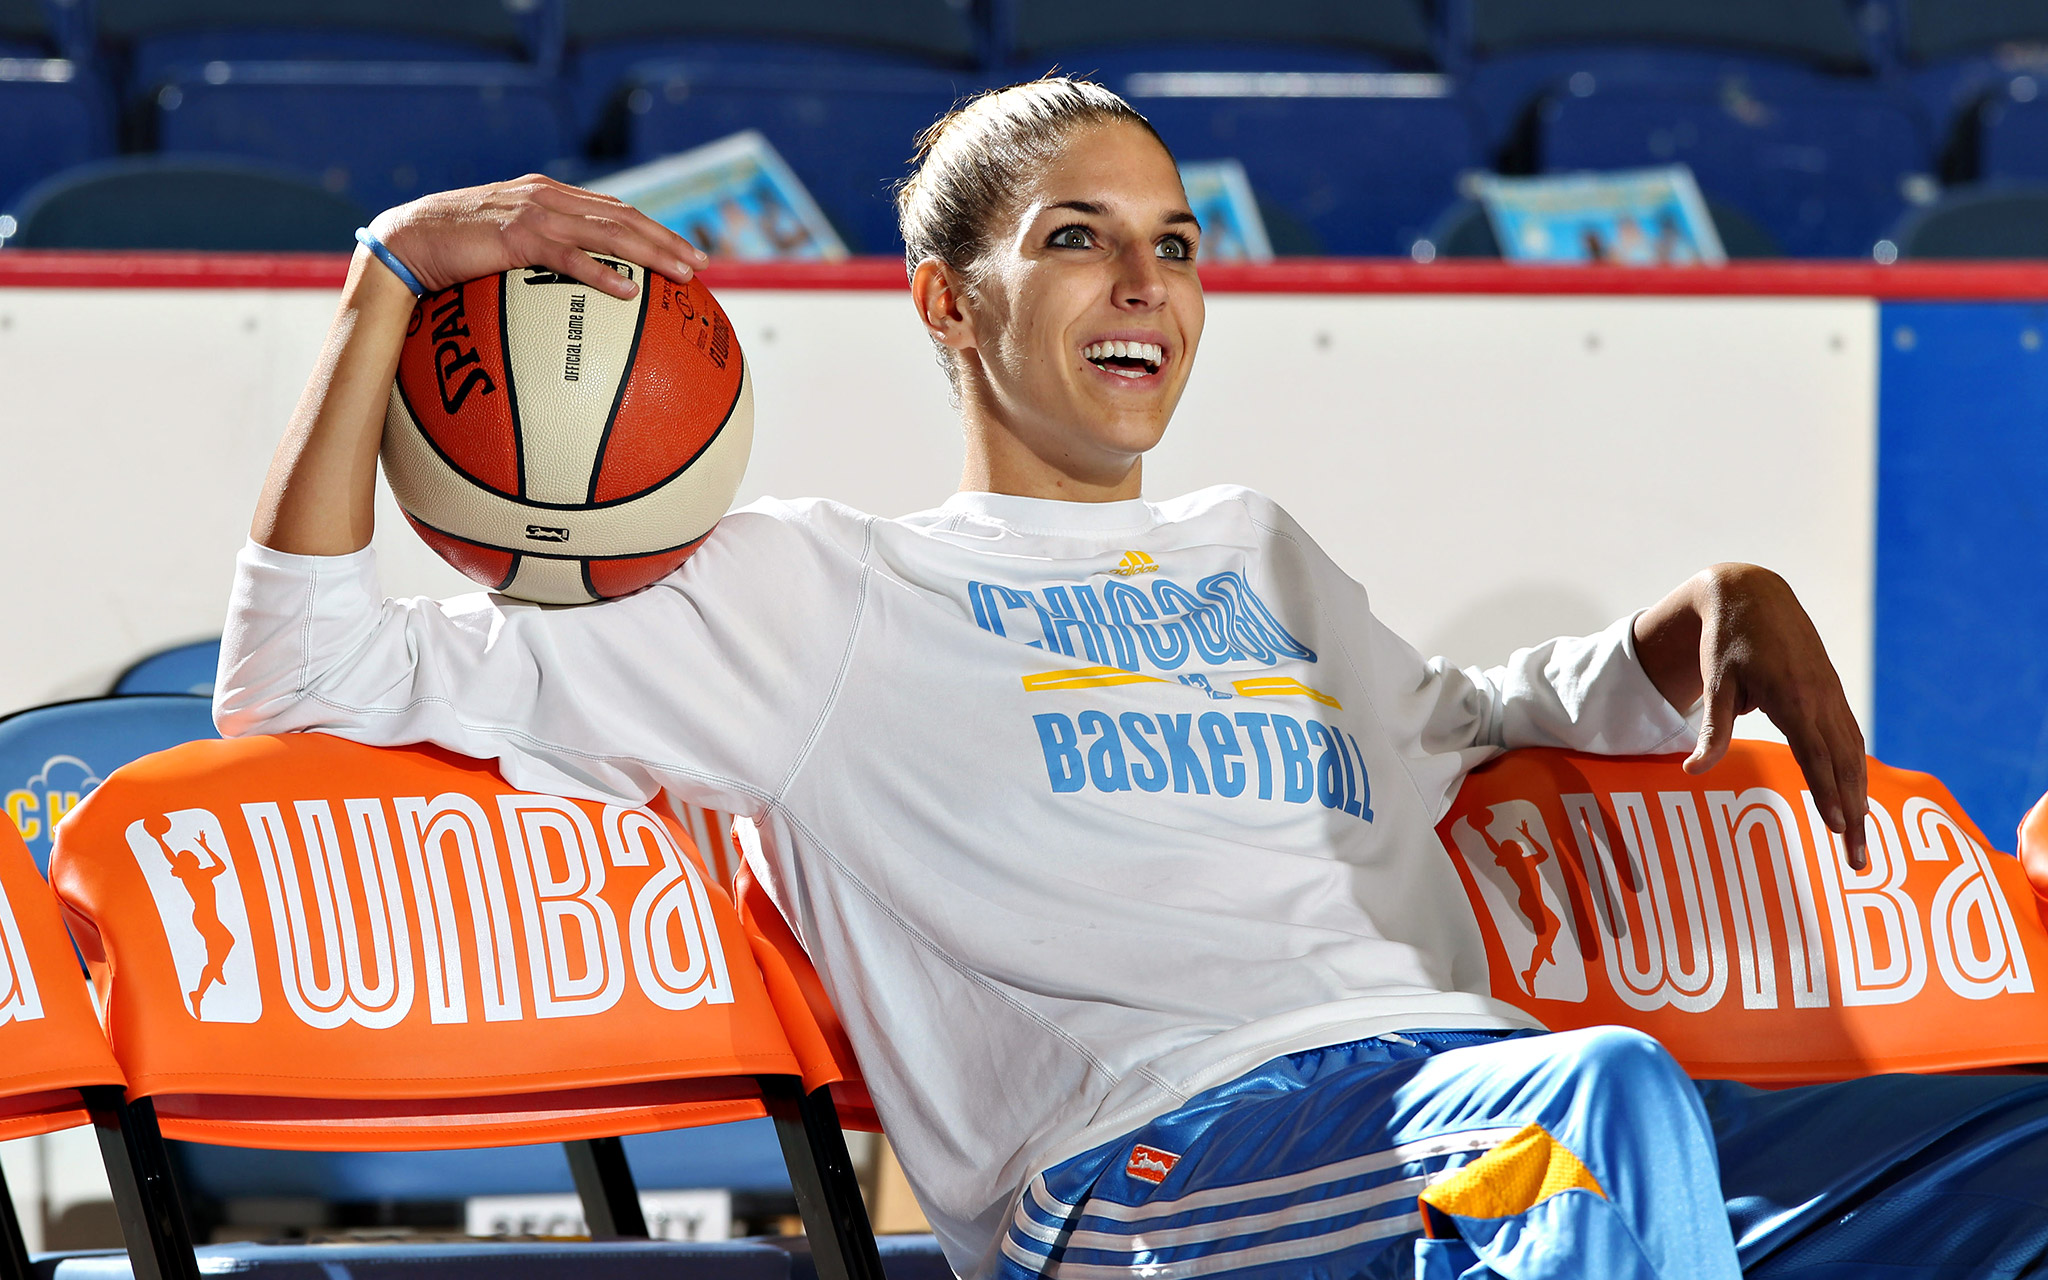 Pursuing Perfection: Elena Delle Donne